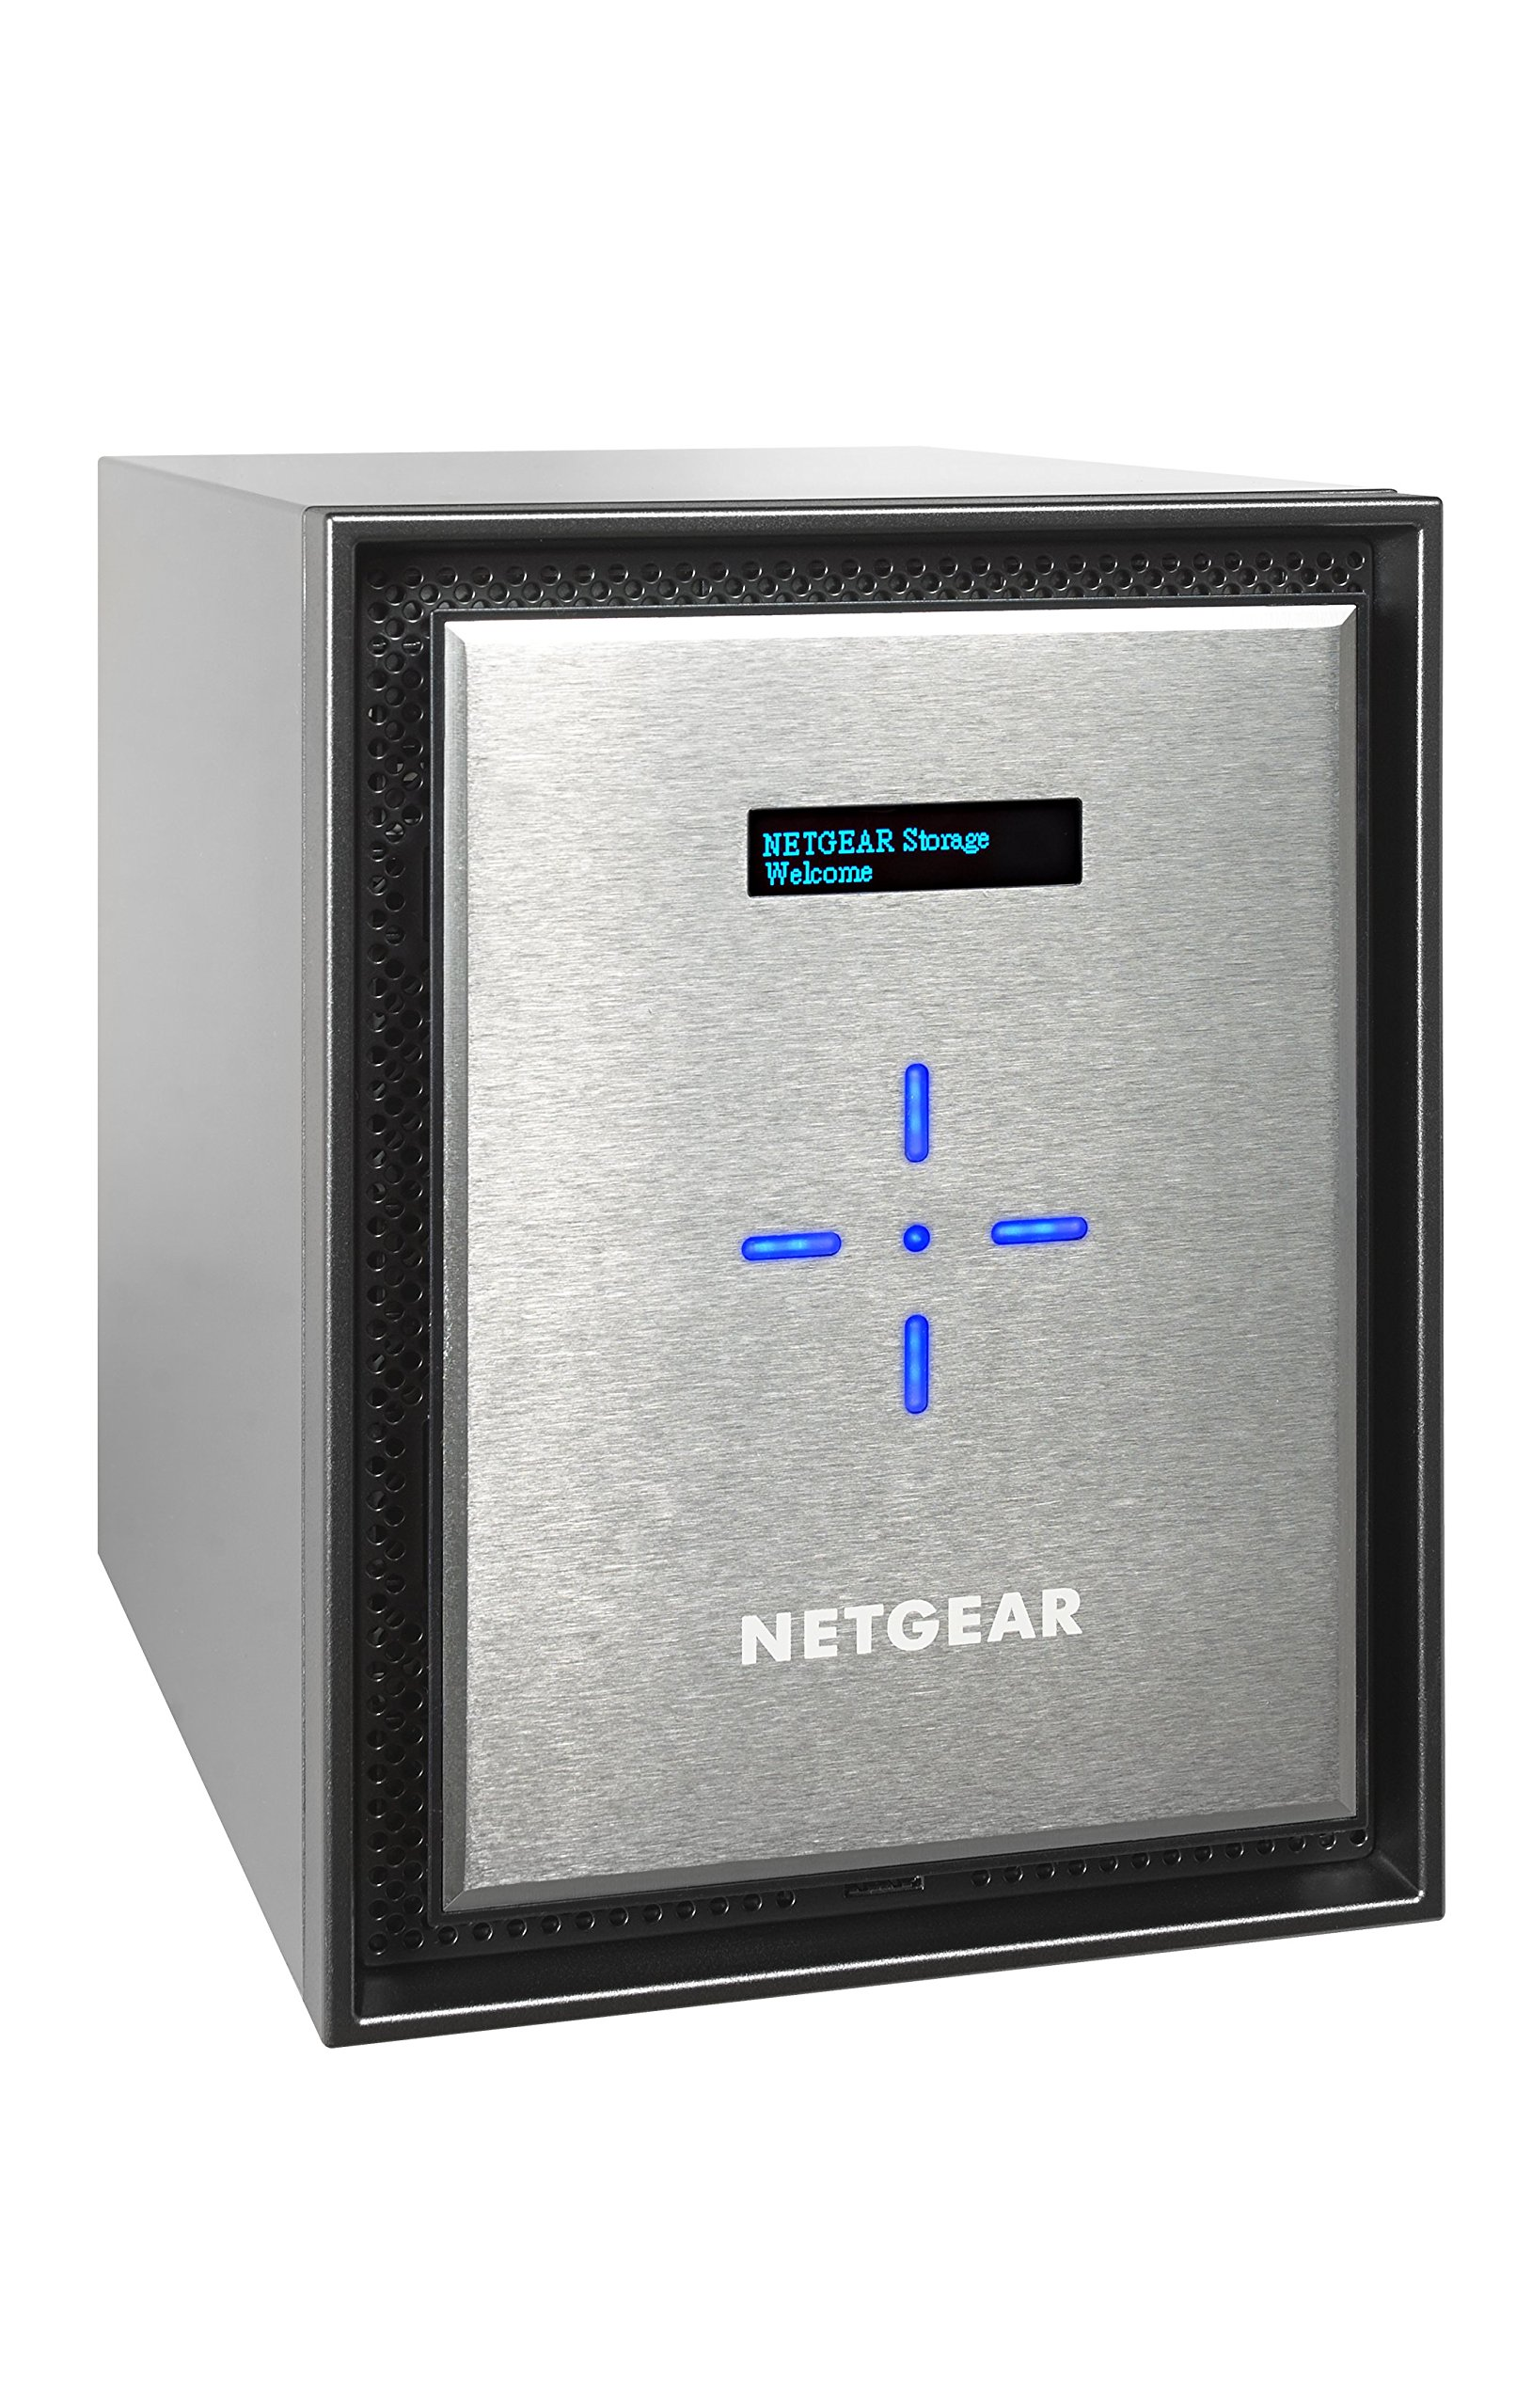 NETGEAR ReadyNAS 6-Bay Ultimate Performance Network Attached Storage, Diskless, 60TB Capacity, Intel Xeon 2.2GHz Quad Core Processor, 8GB RAM (RN626X00-100NES) by NETGEAR (Image #1)